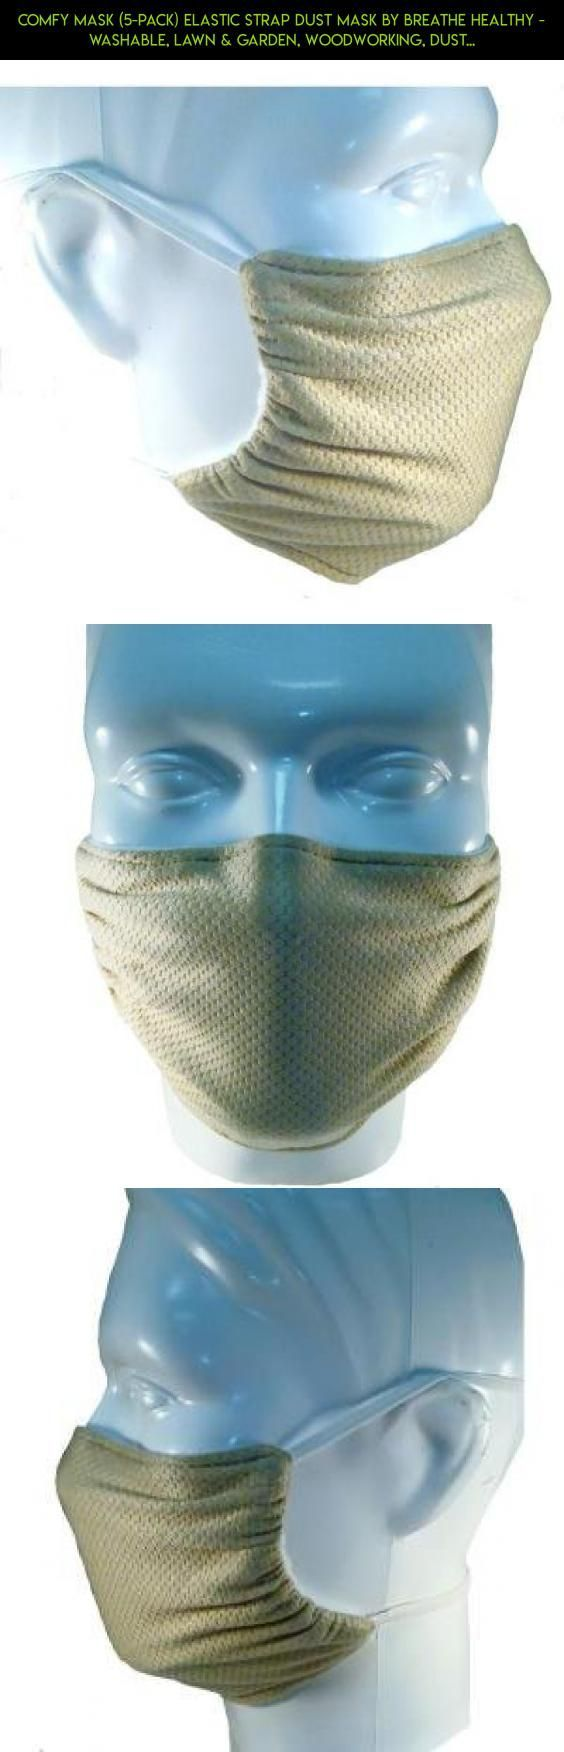 Comfy Mask (5-Pack) Elastic Strap Dust Mask By Breathe Healthy - Washable, Lawn & Garden, Woodworking, Dust, Drywall & Sanding; Honeycomb Beige #tech #kit #shopping #mask #gardening #camera #plans #parts #gadgets #products #fpv #drone #racing #technology